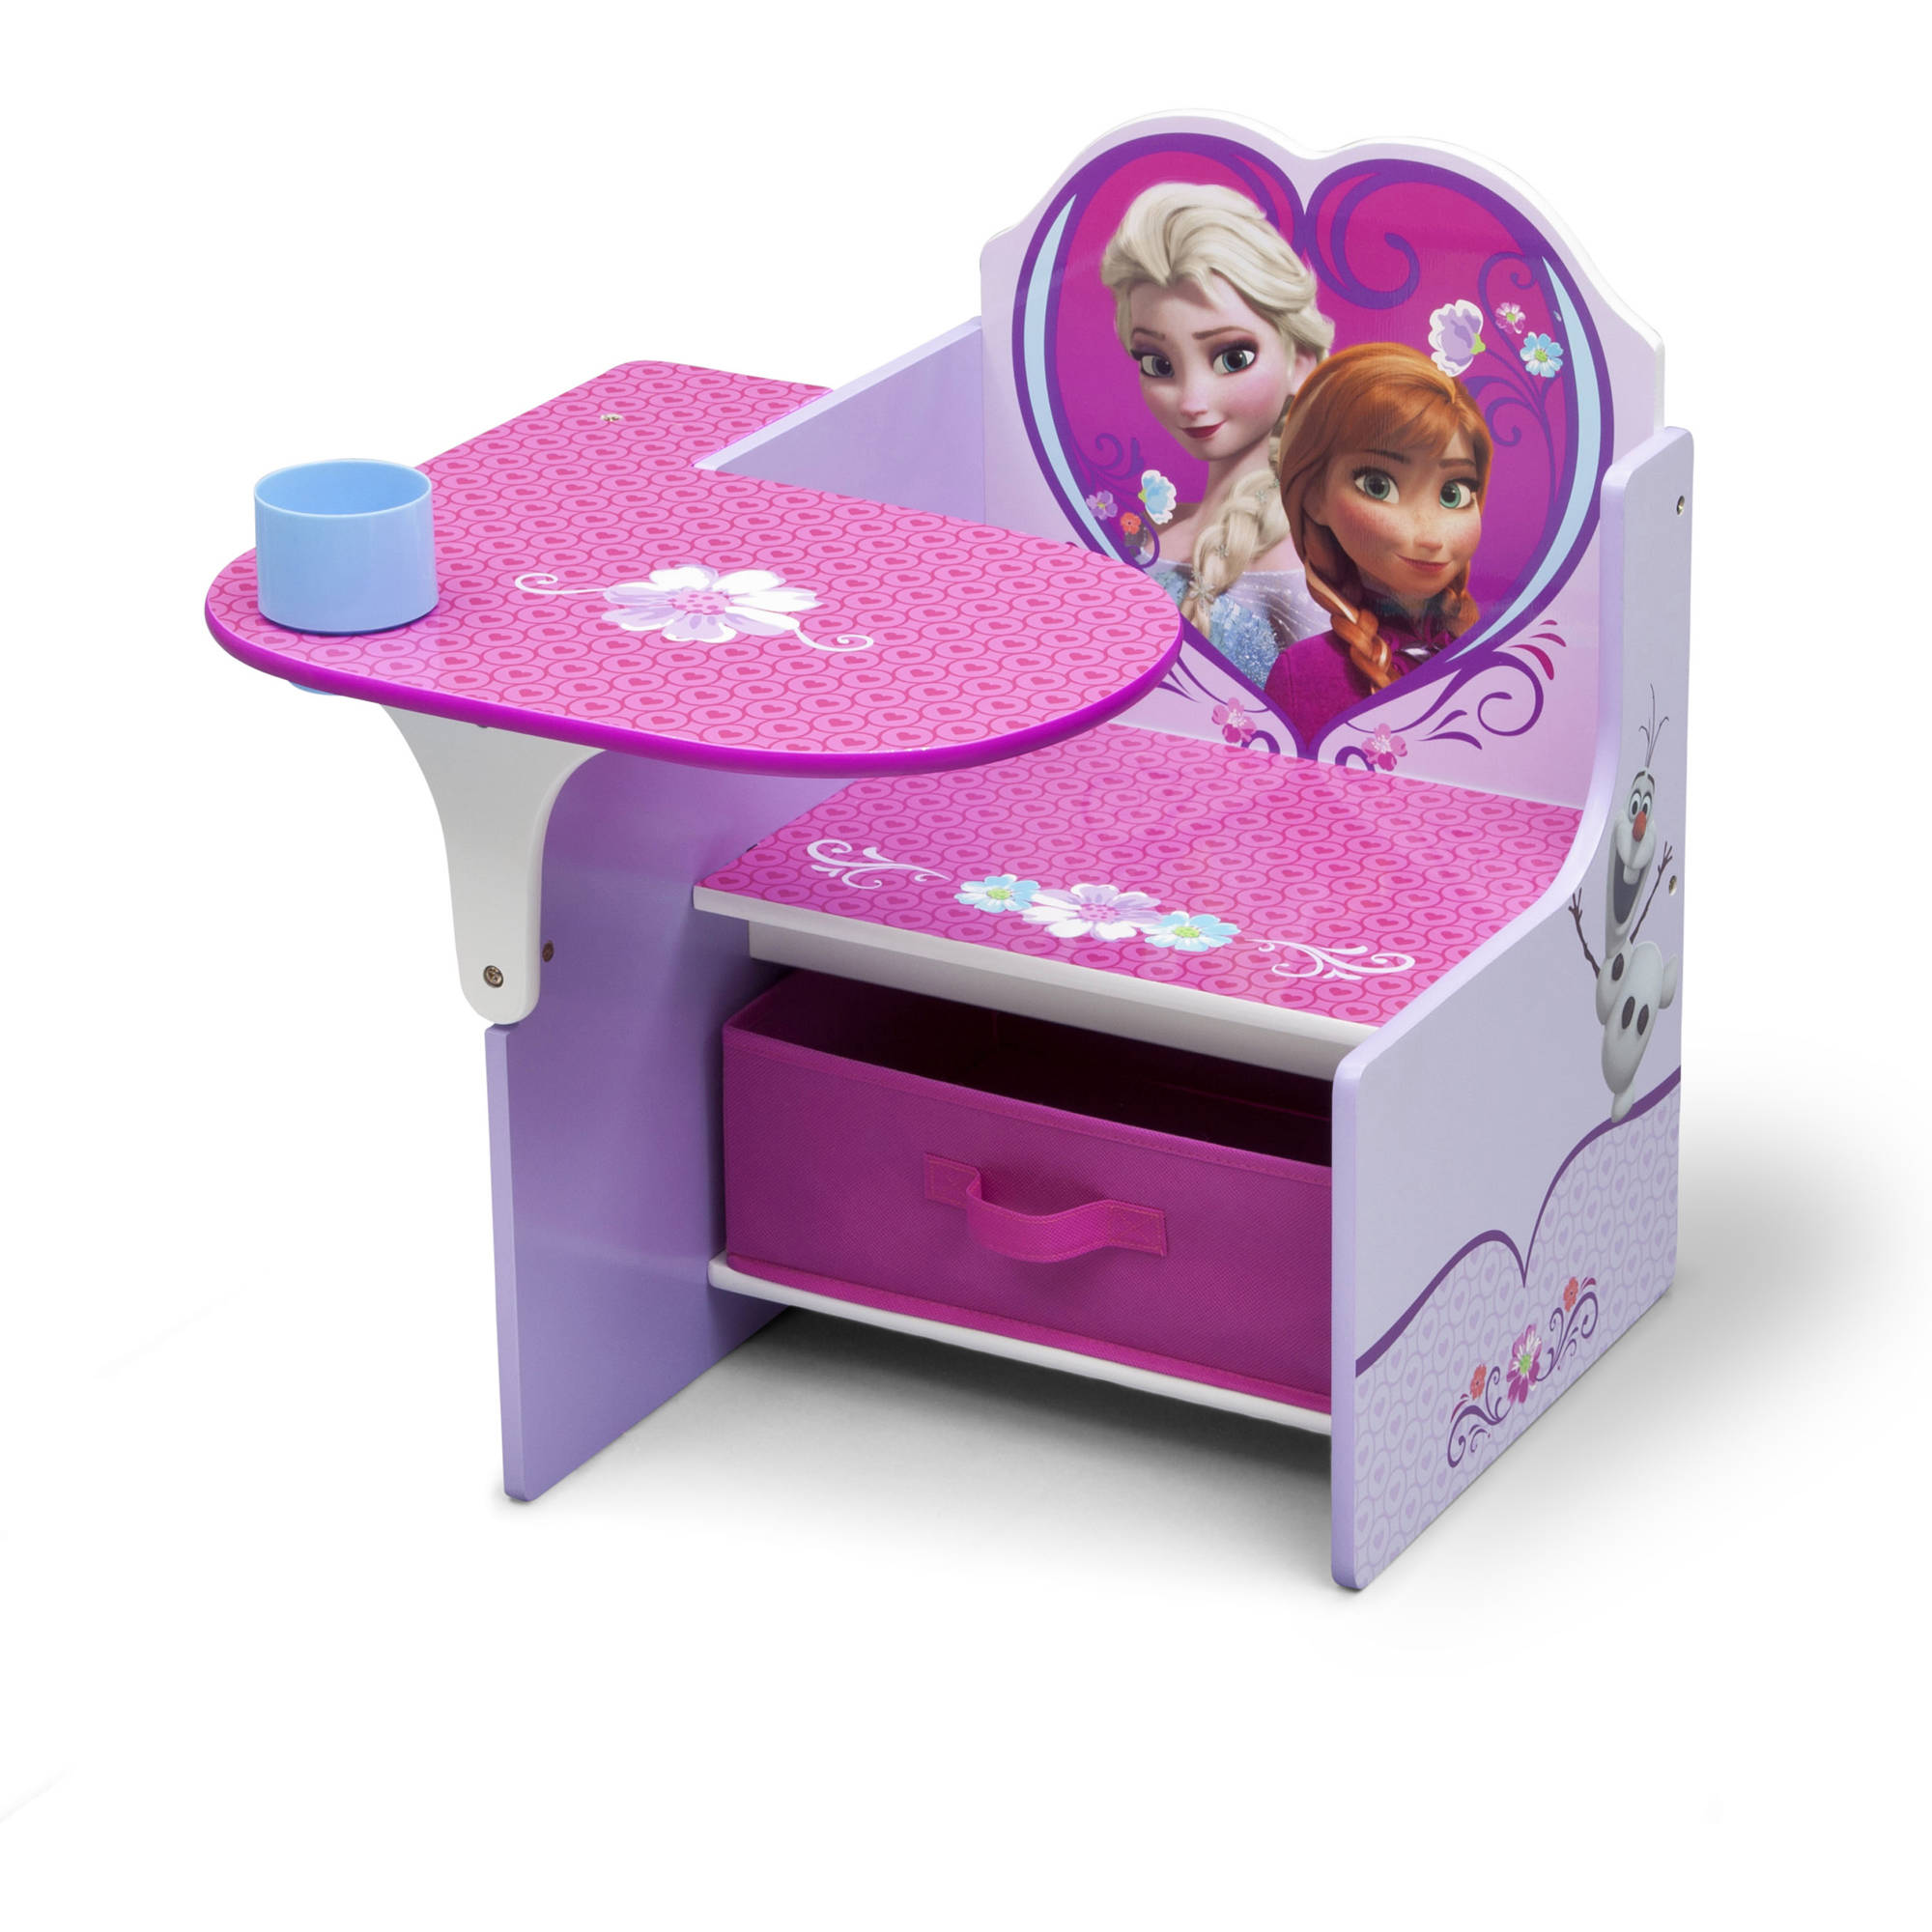 Disney Frozen Toddler Child Chair Desk with Bonus Storage Bin by